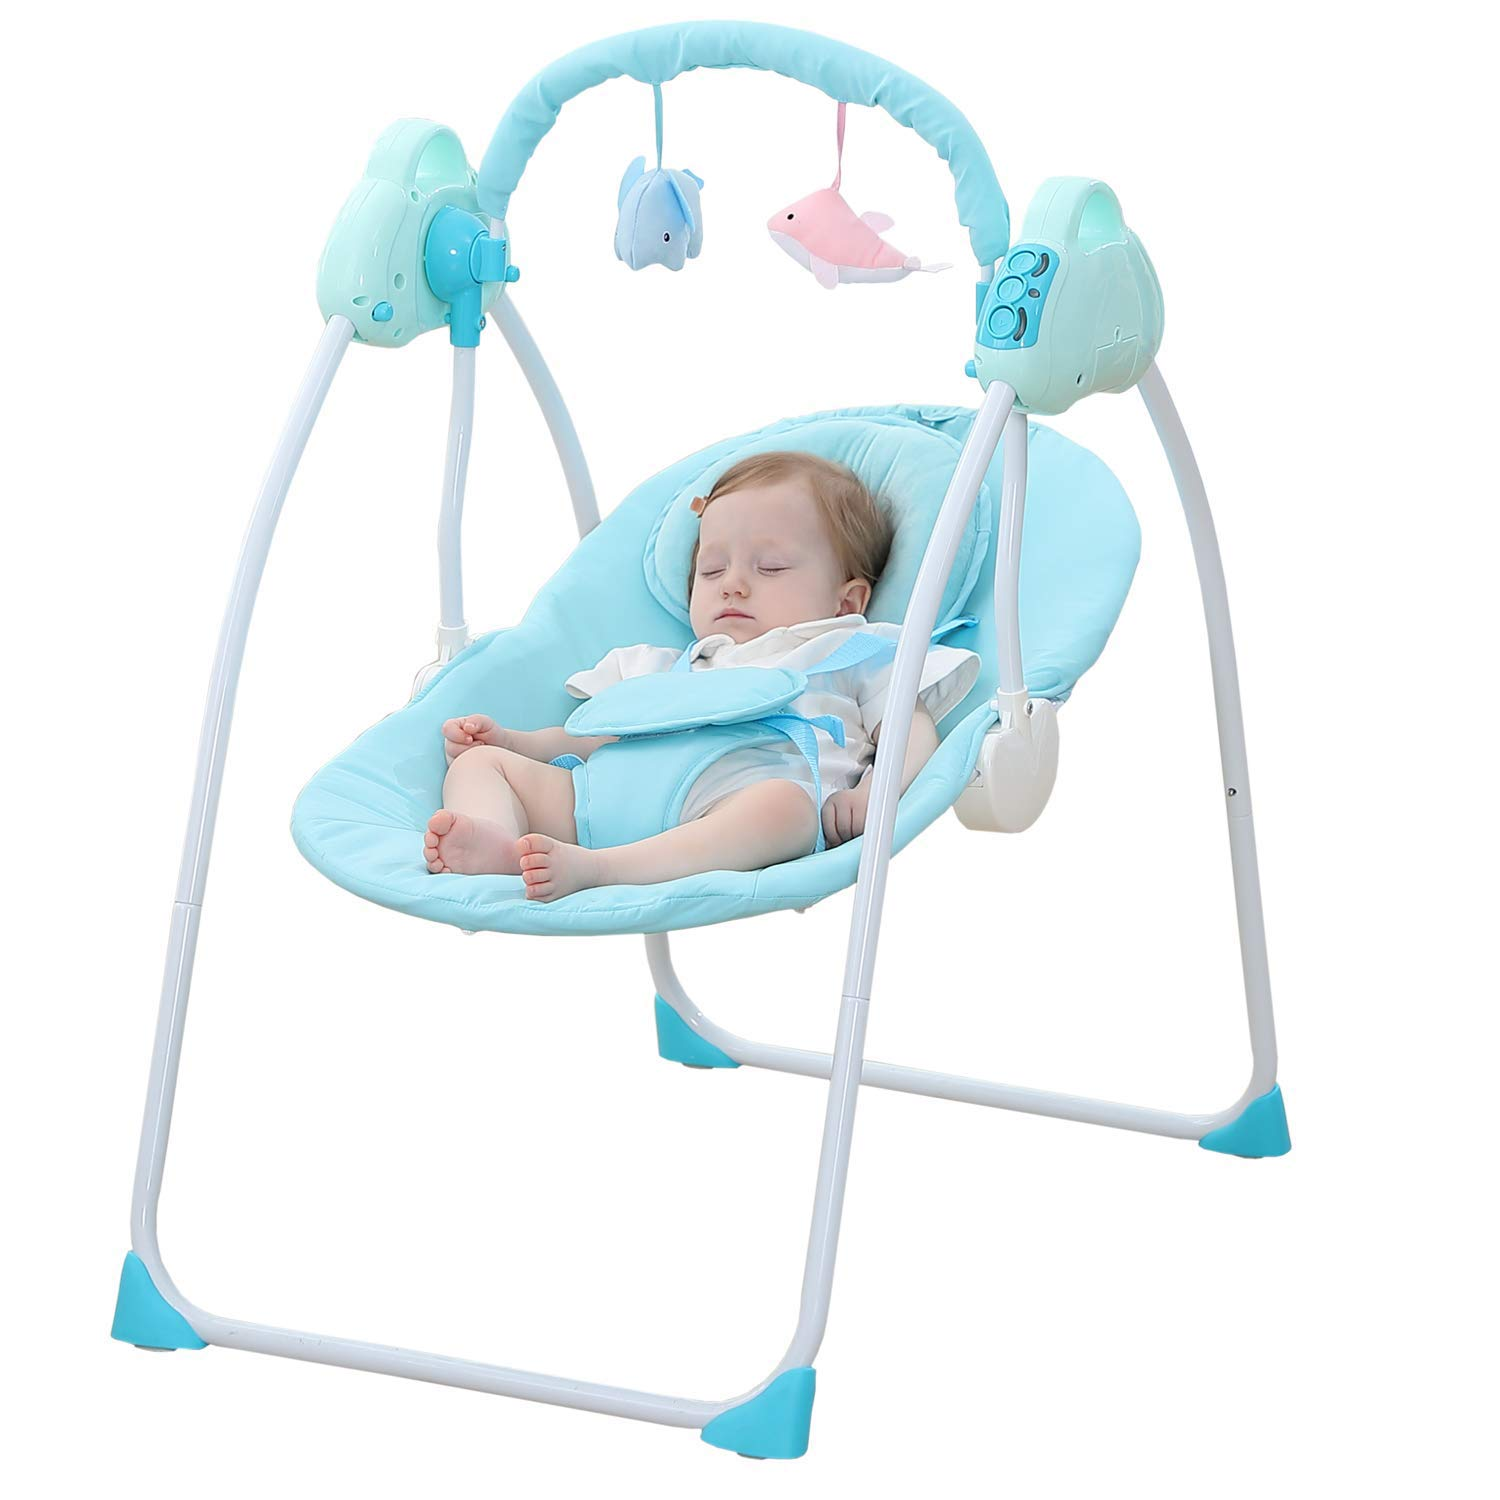 WBPINE Baby Swing Cradle, Automatic Portable Baby Rocker Swing Chair with Music (Blue) Without Remote Control